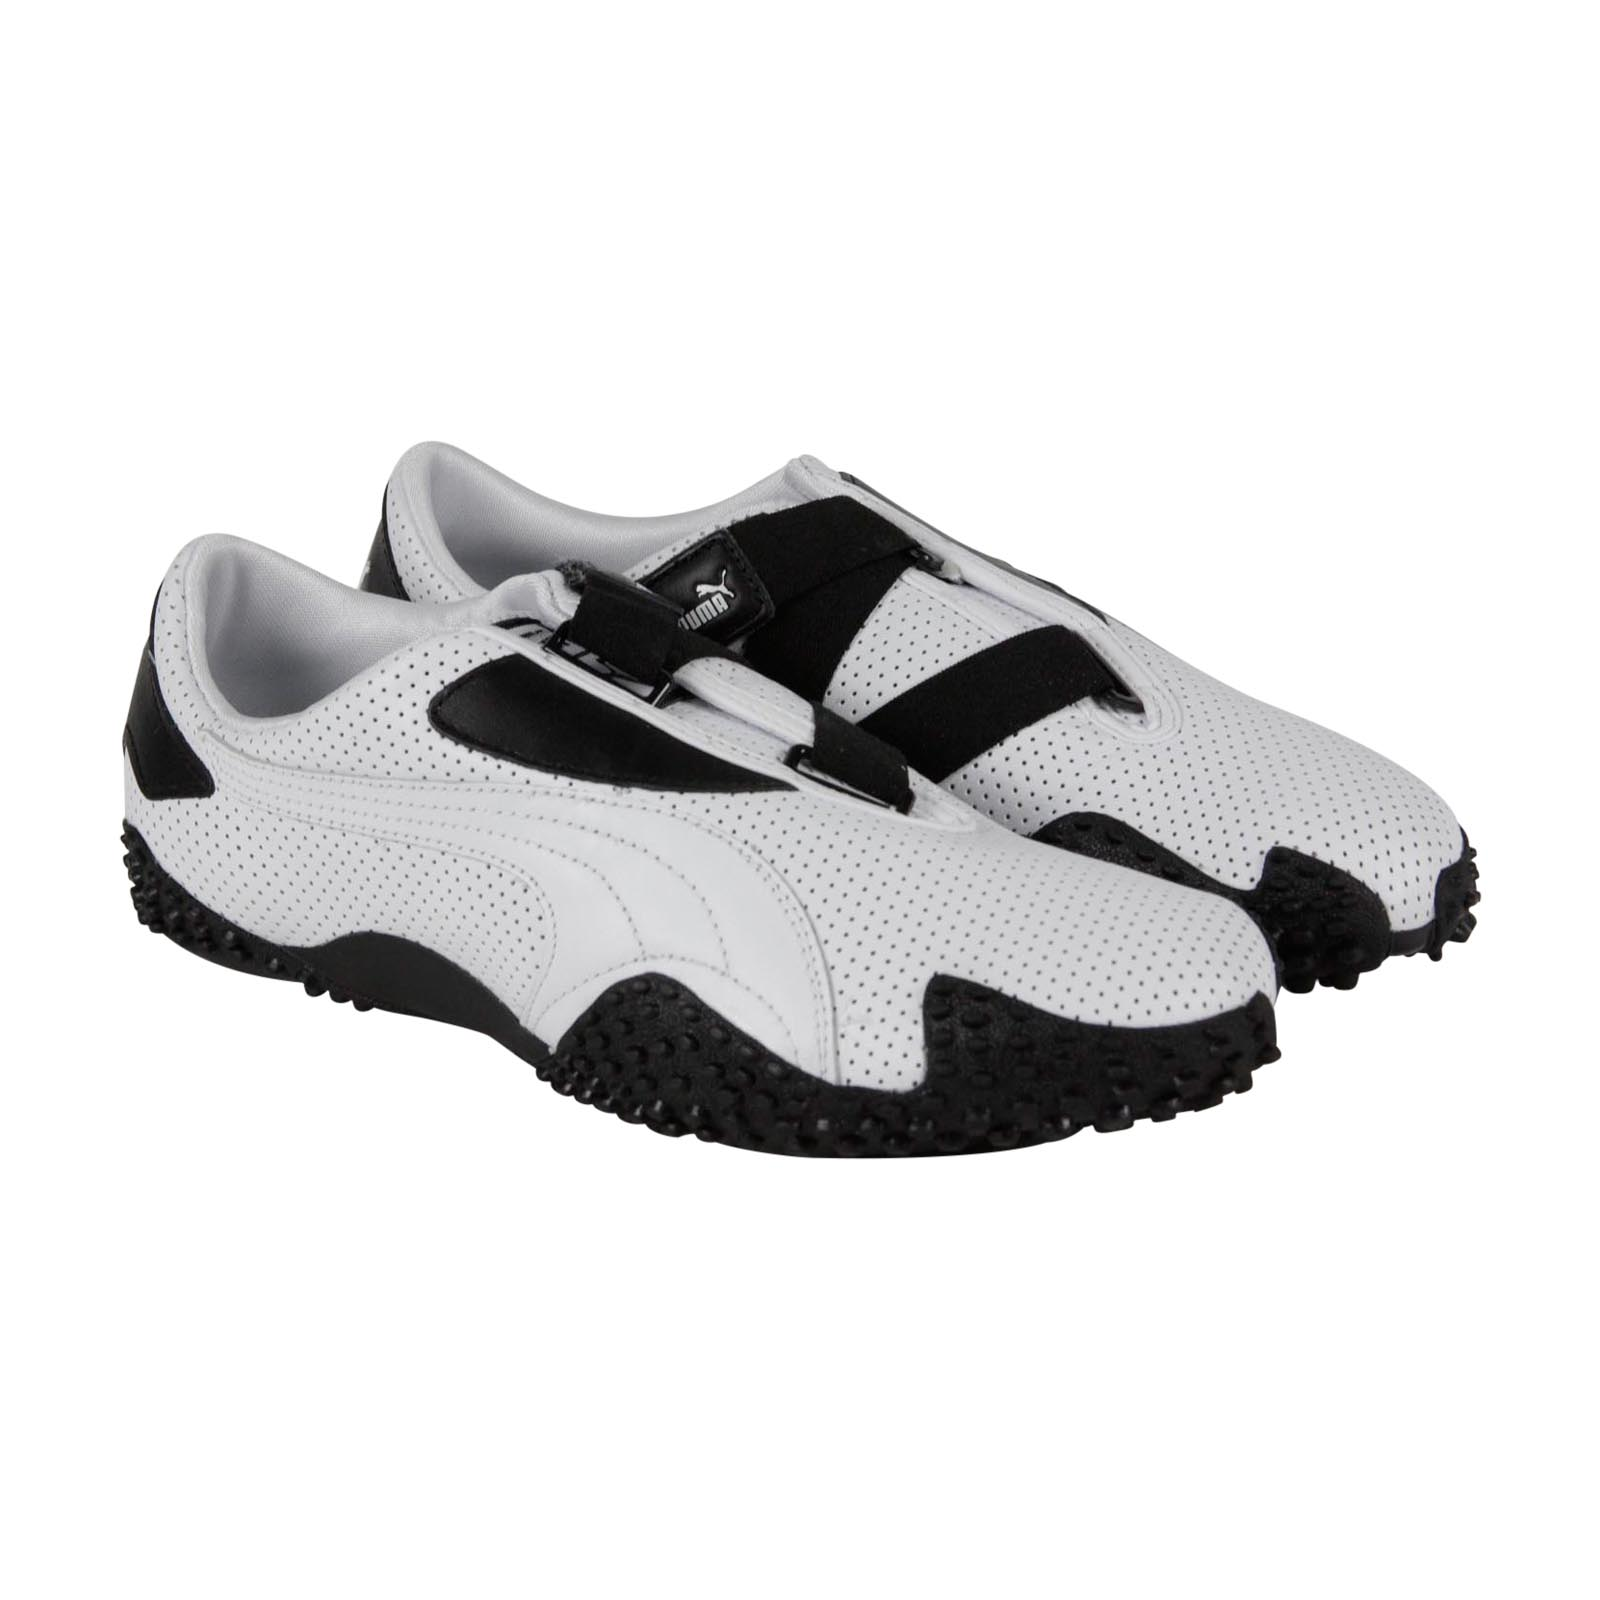 PUMA - Puma Mostro Perf Mens White Leather Strap Slip On Sneakers Shoes -  Walmart.com 8736b657d